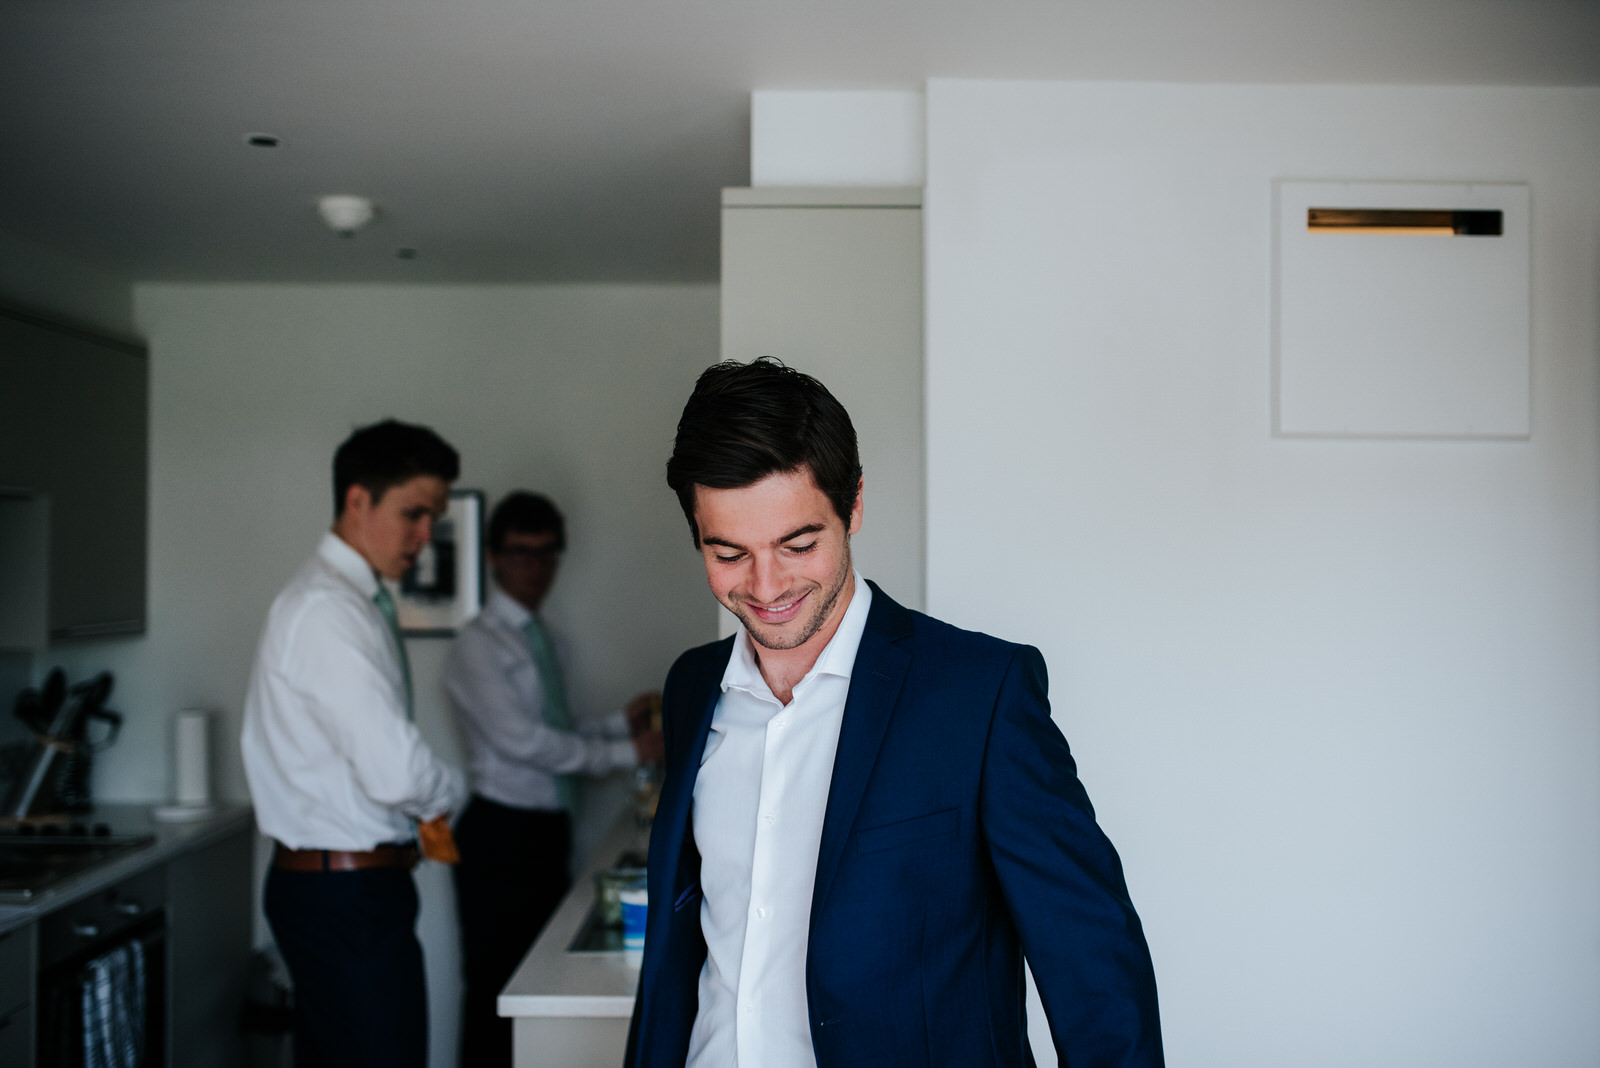 Groom reflects about the day as he gets ready in front of grooms